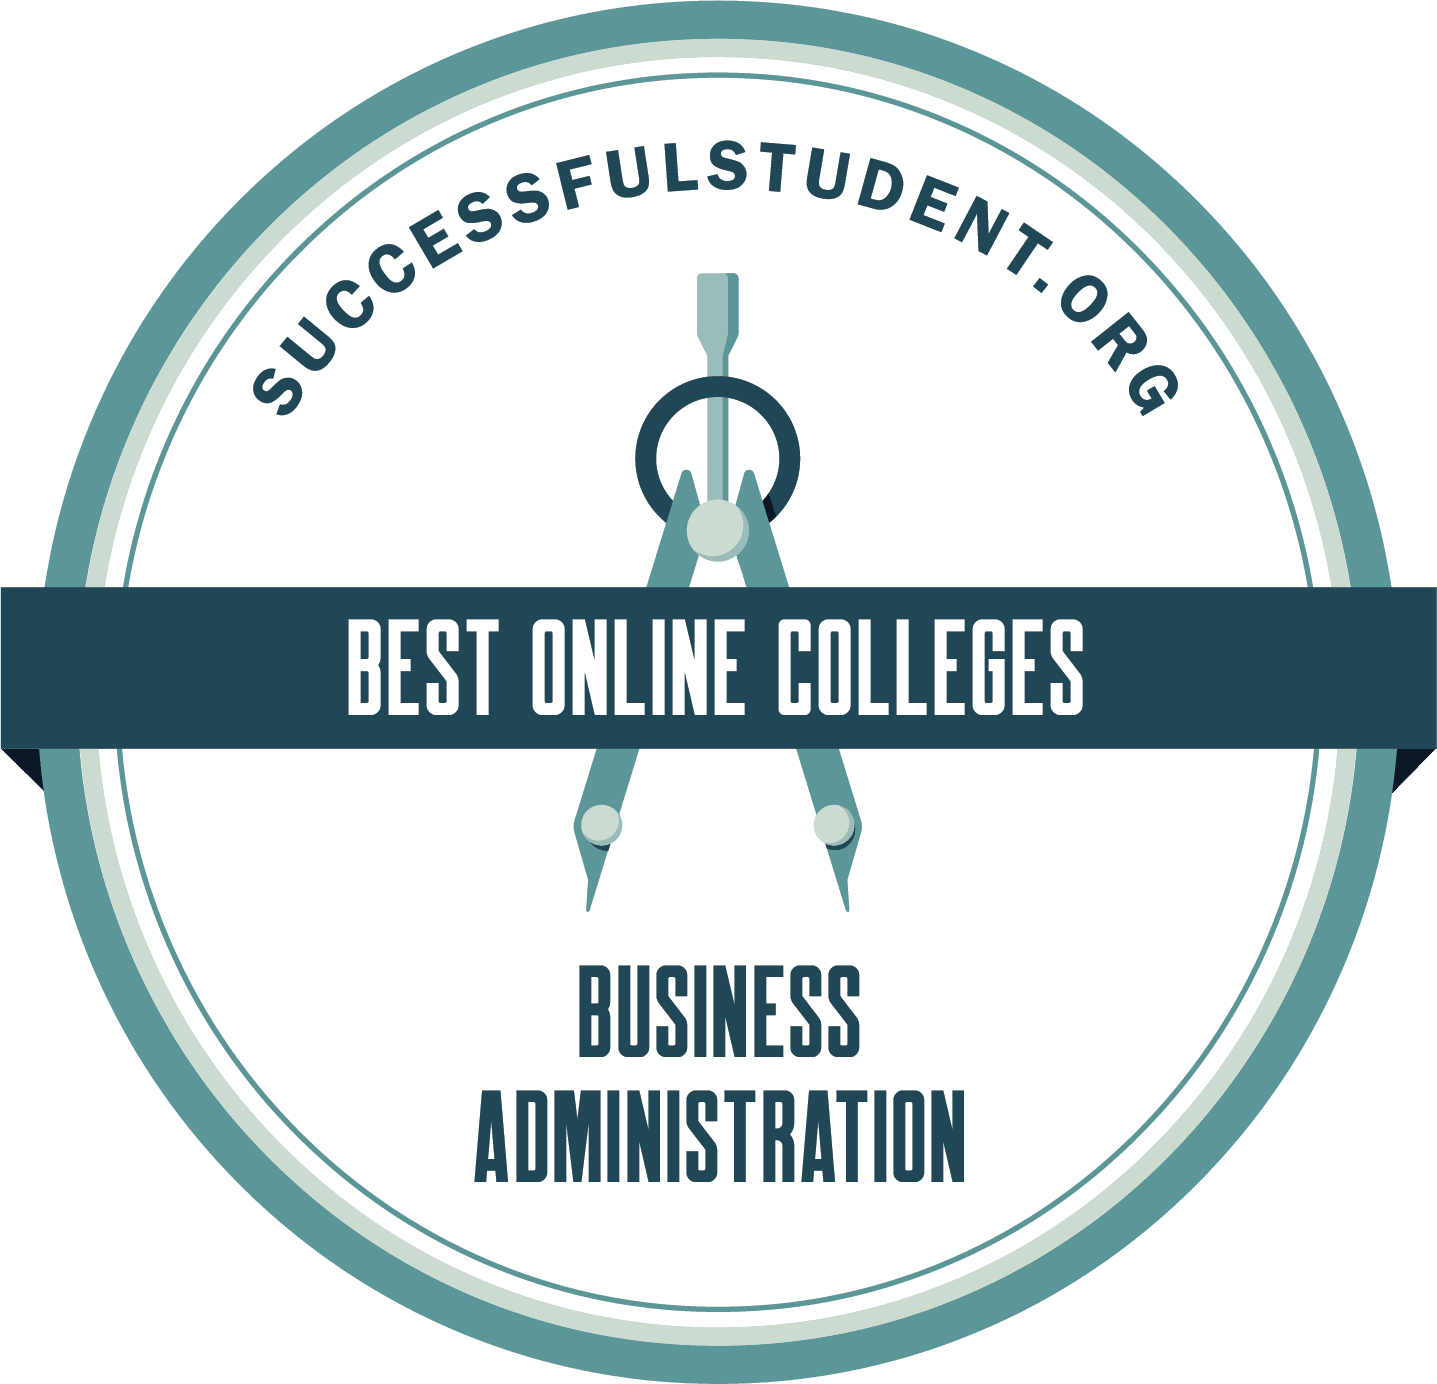 36 Best Online Business Administration Colleges's Badge